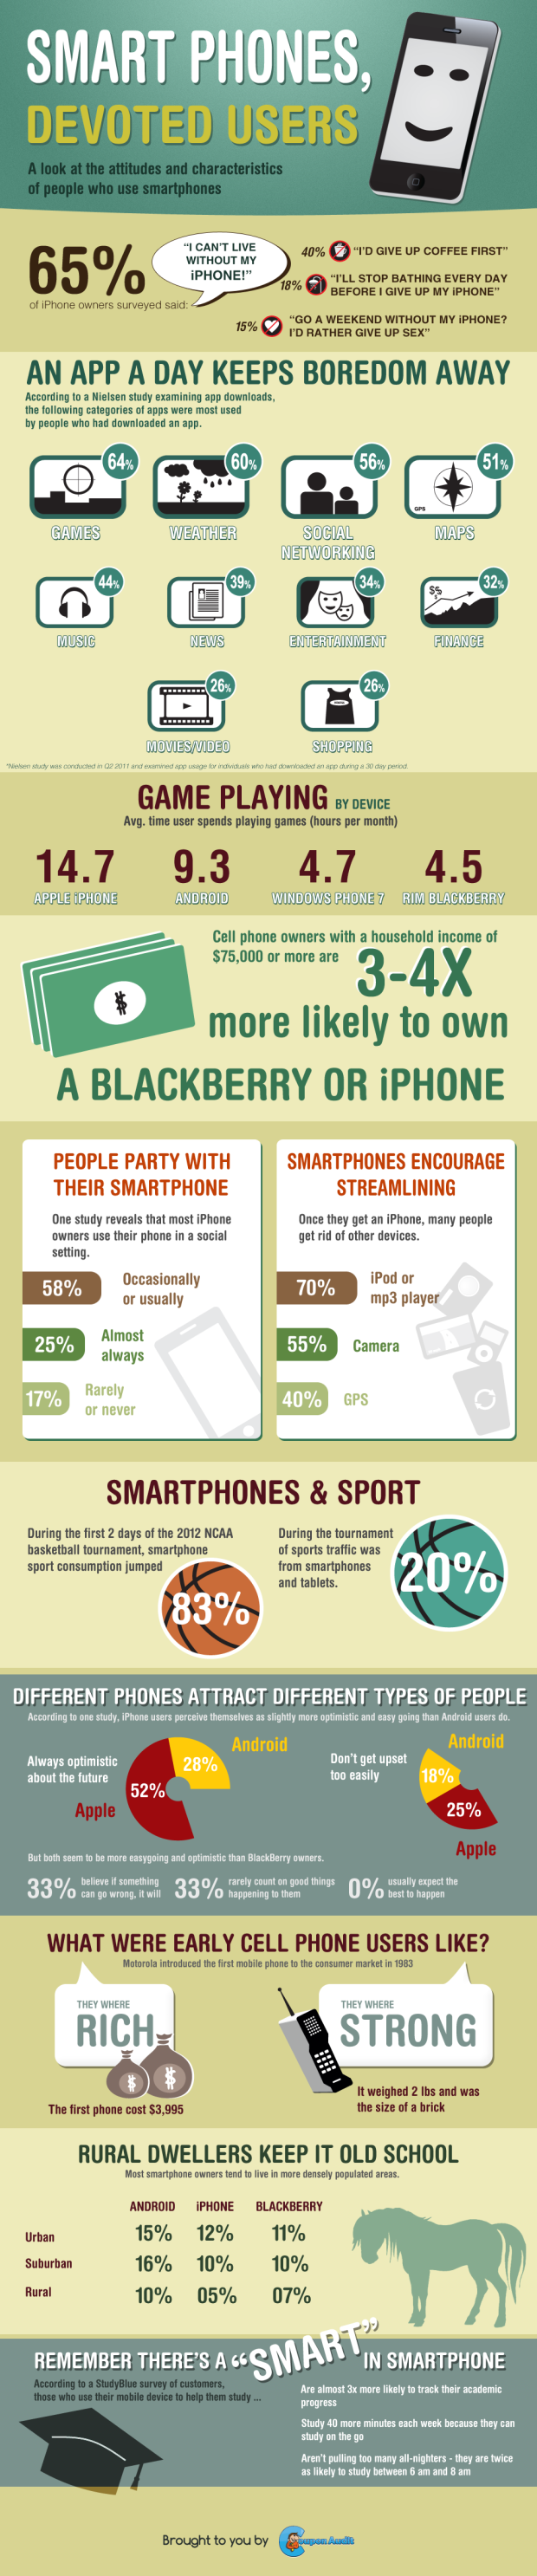 smartphones-devoted-users-infographic_50b3276273a62